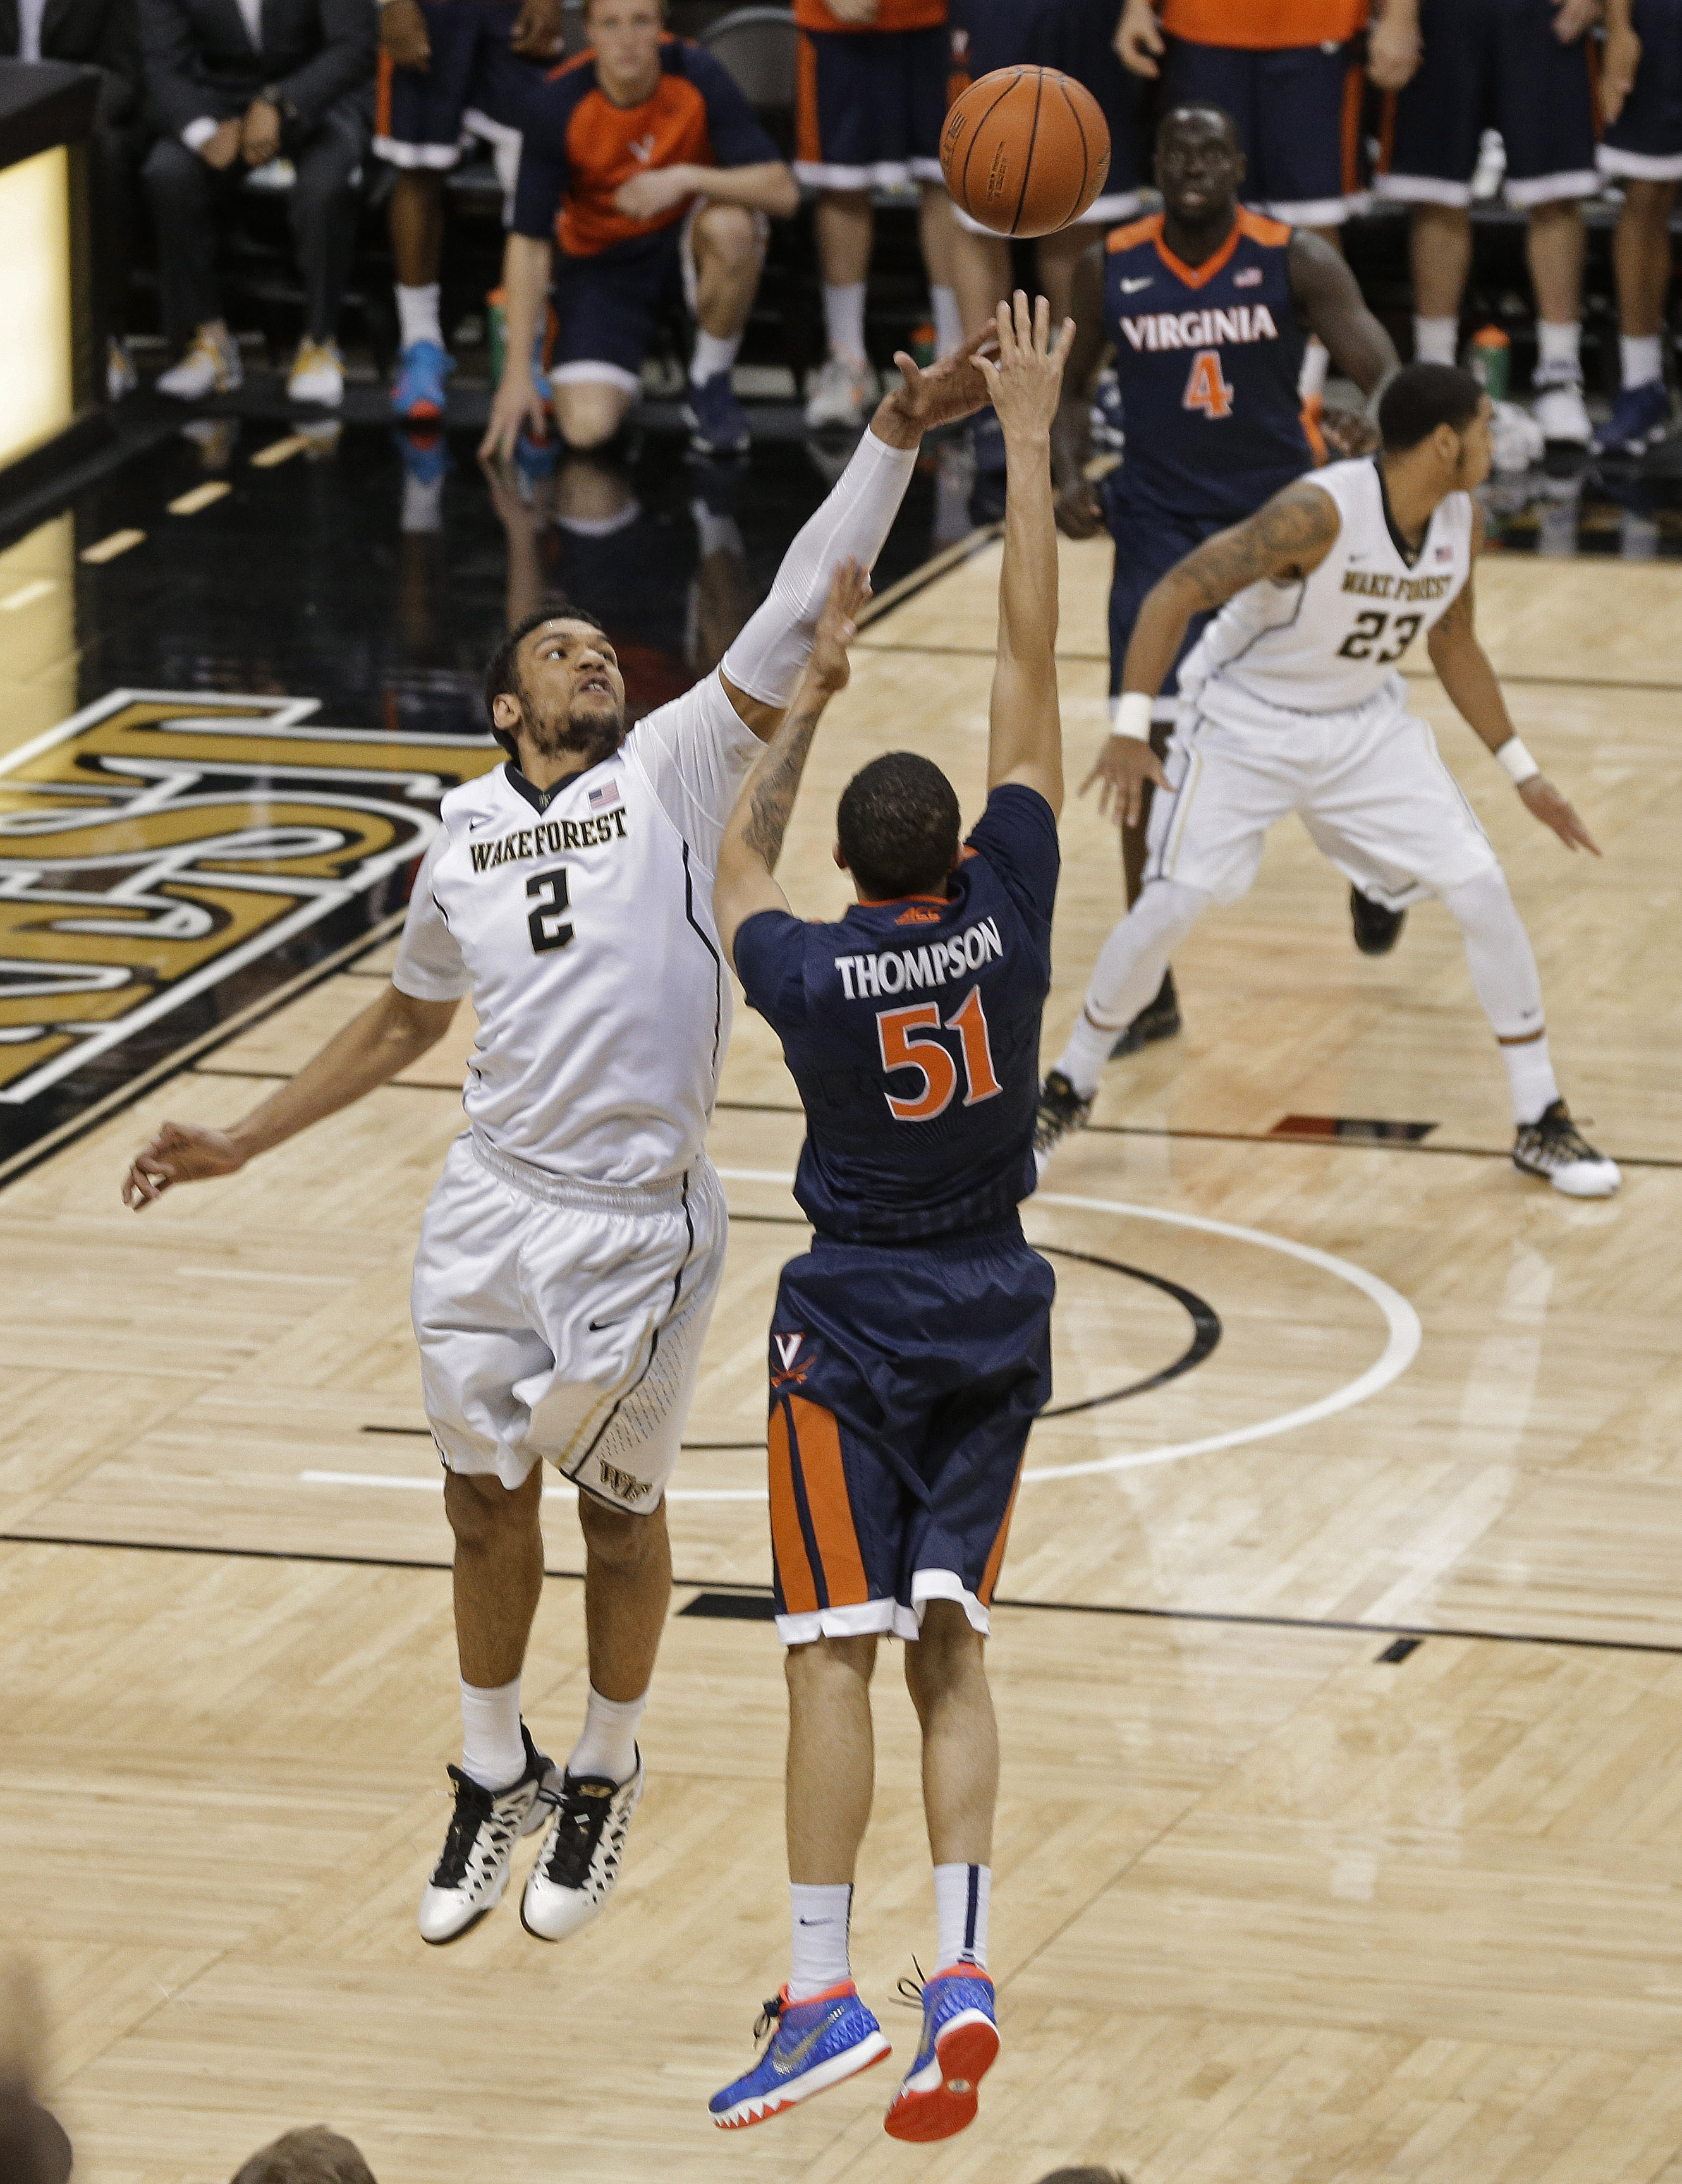 Virginia's Darius Thompson (51) shoots his game-winning basket over Wake Forest's Devin Thomas (2) in the second half of an NCAA college basketball game in Winston-Salem, N.C., Tuesday, Jan. 26, 2016. Virginia won 72-71. (AP Photo/Chuck Burton)